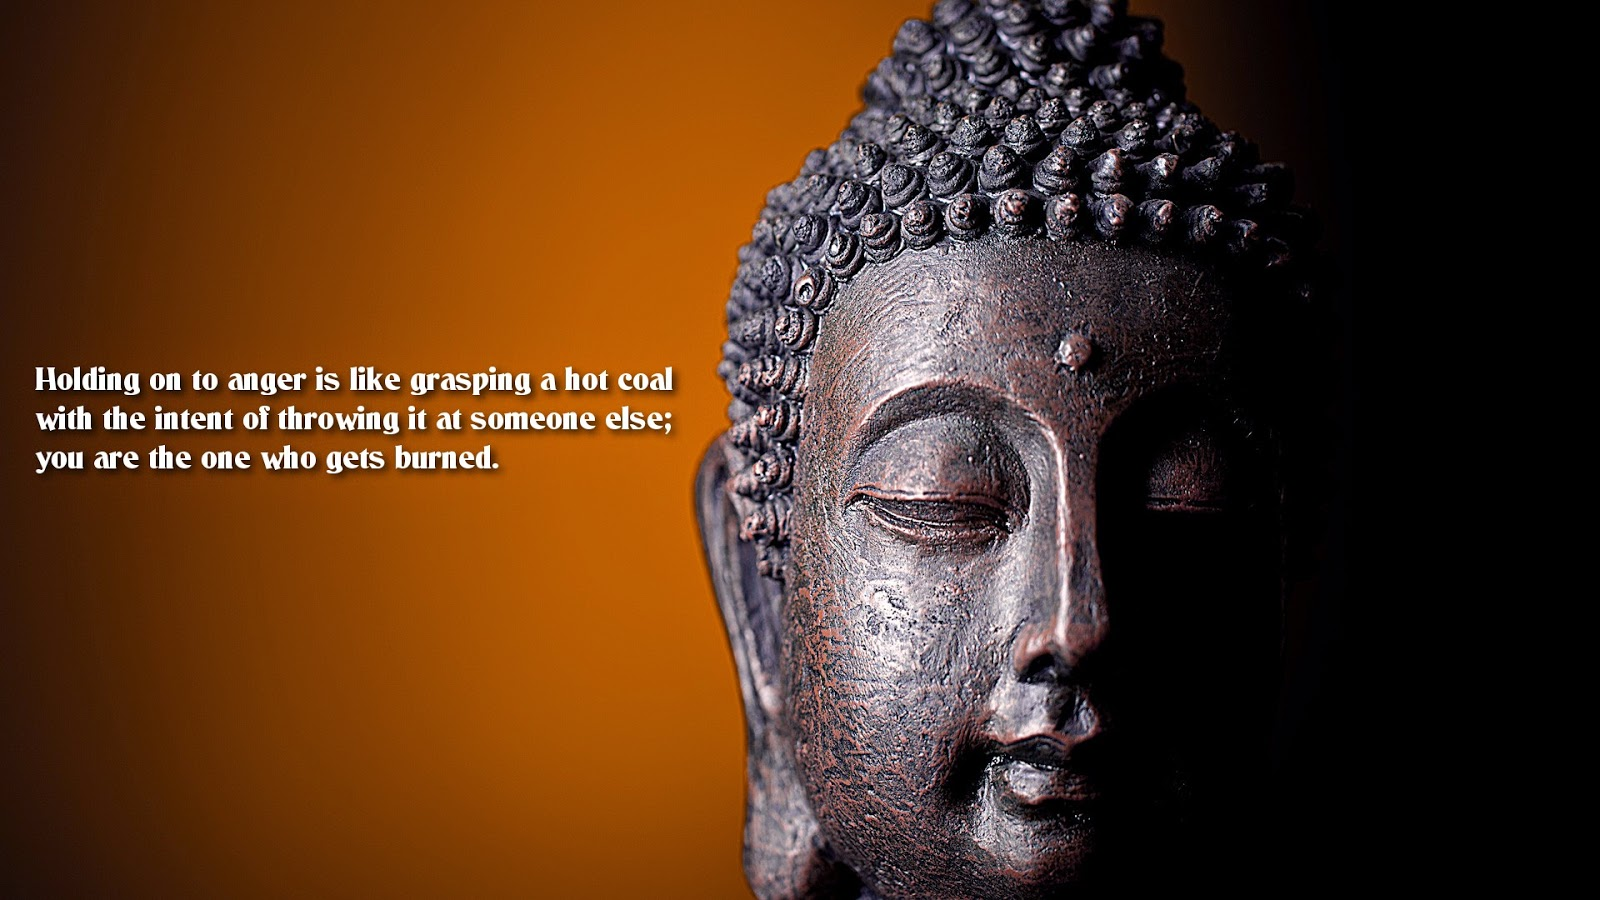 Buddha Quotes on being anger